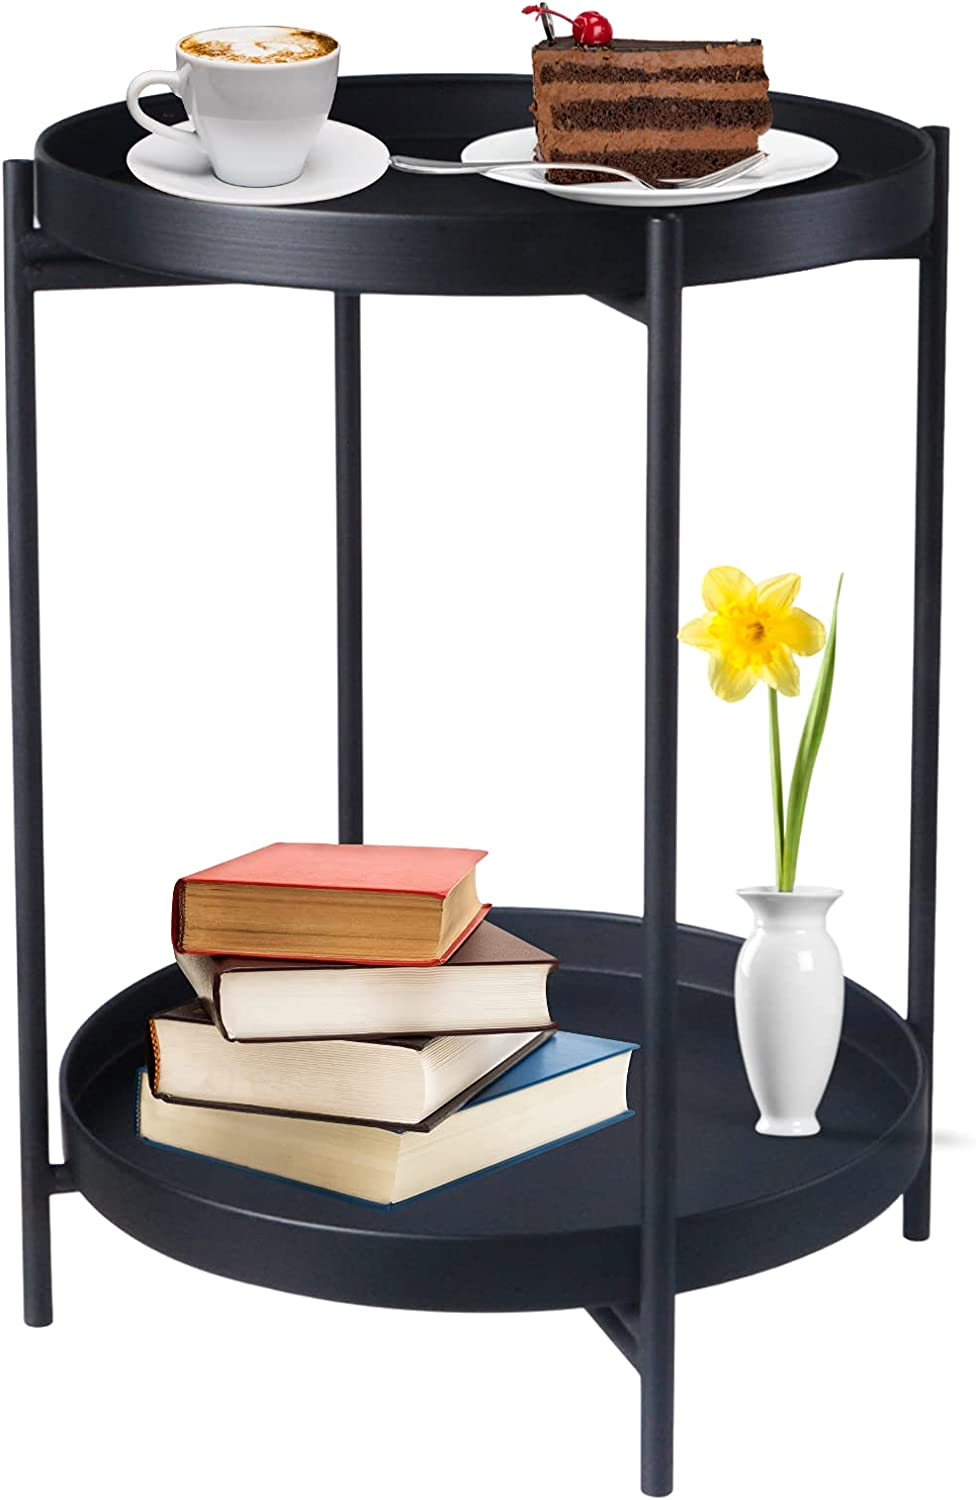 Some reservation Mairuker End Table 2 Tiers Coffee Folding Max 54% OFF Round Side Metal